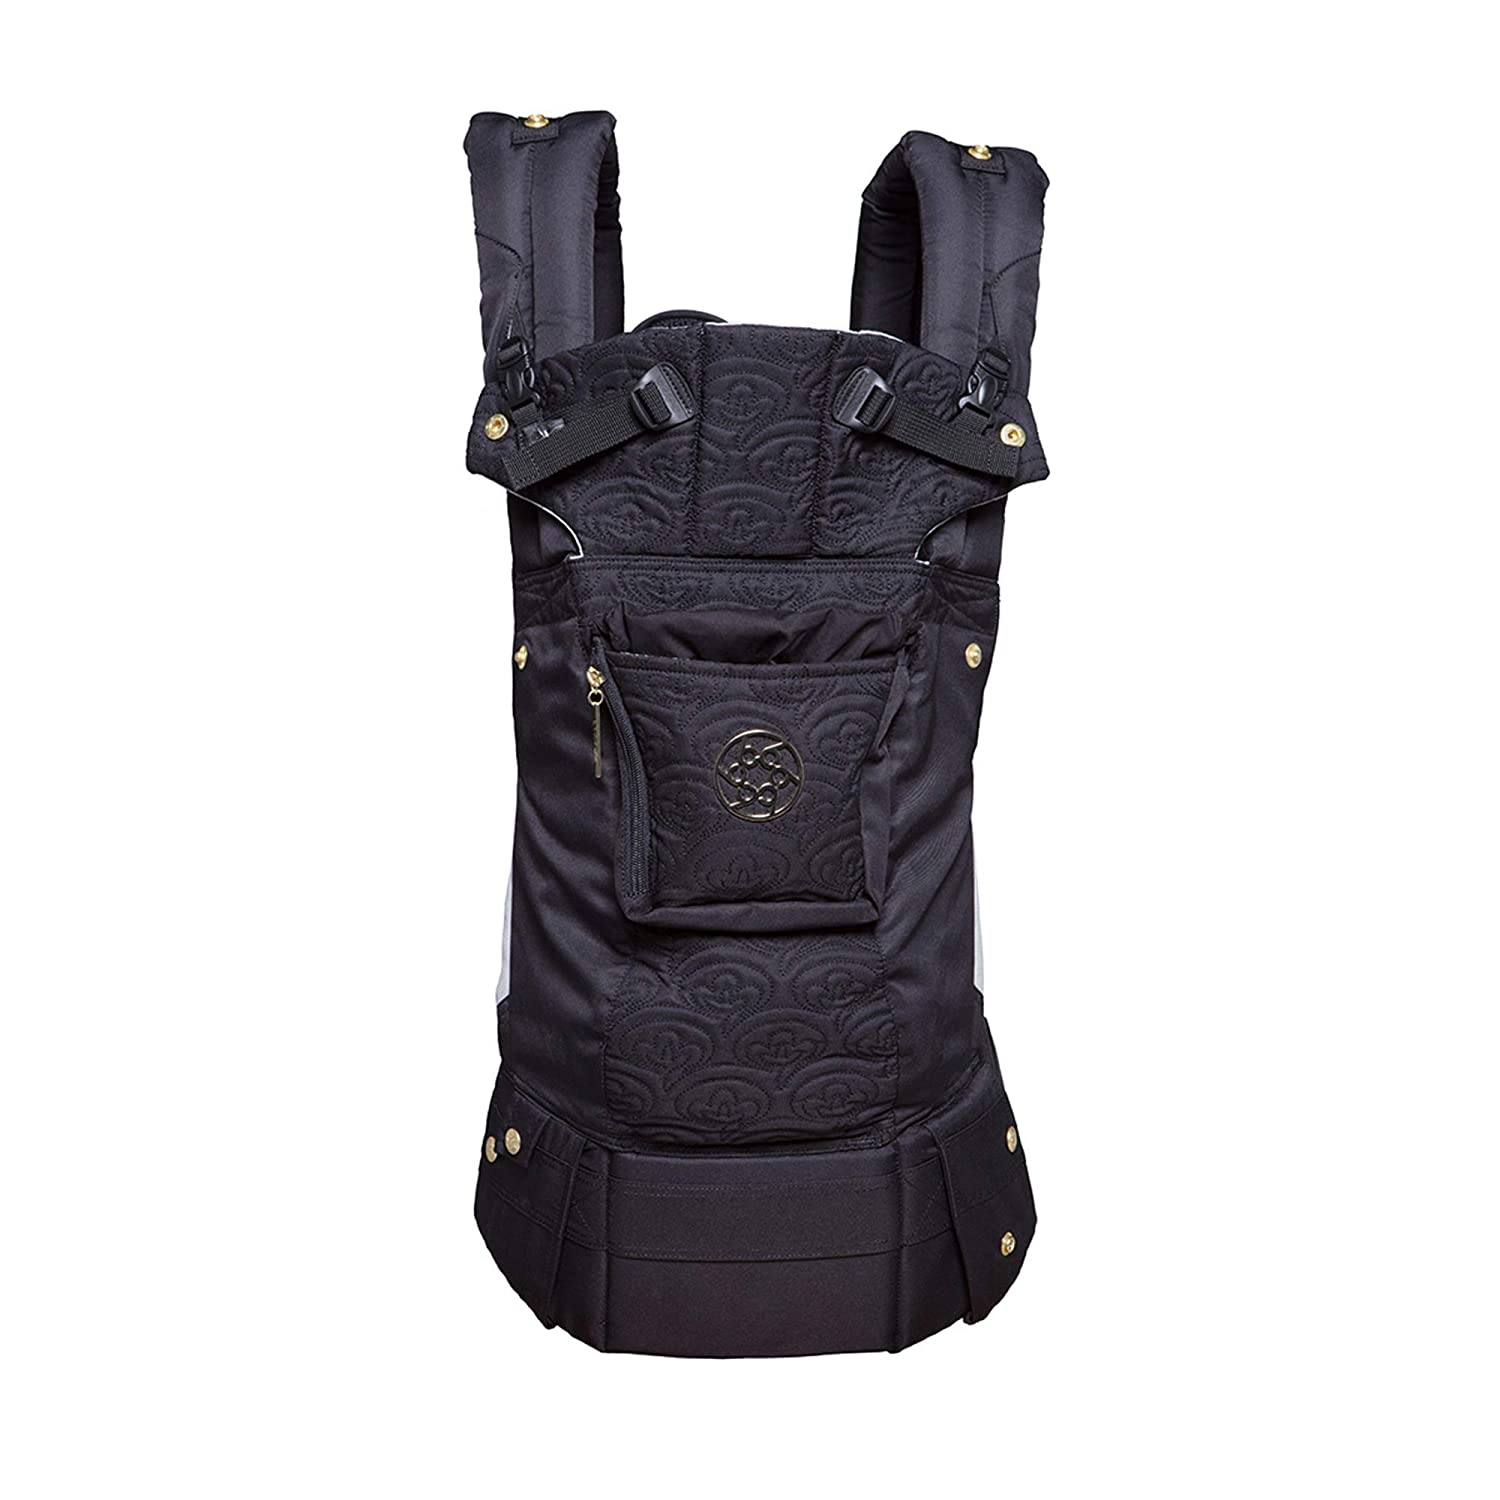 LÍLLÉbaby Complete Embossed Luxe All-Positions 360° Ergonomic Baby and Child Carrier, Noir Black